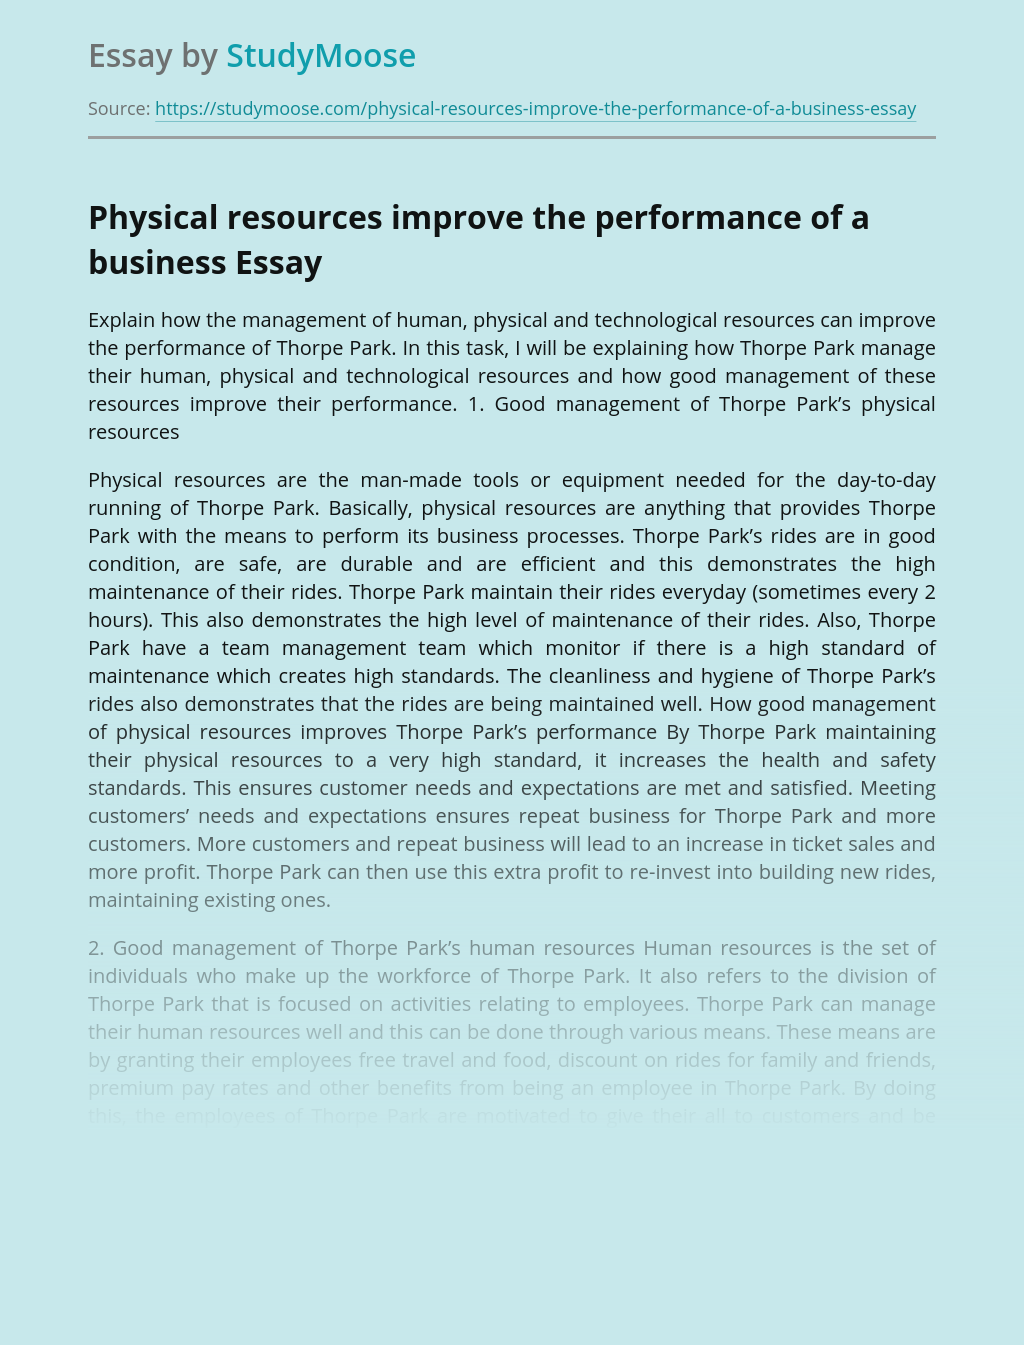 Physical resources improve the performance of a business